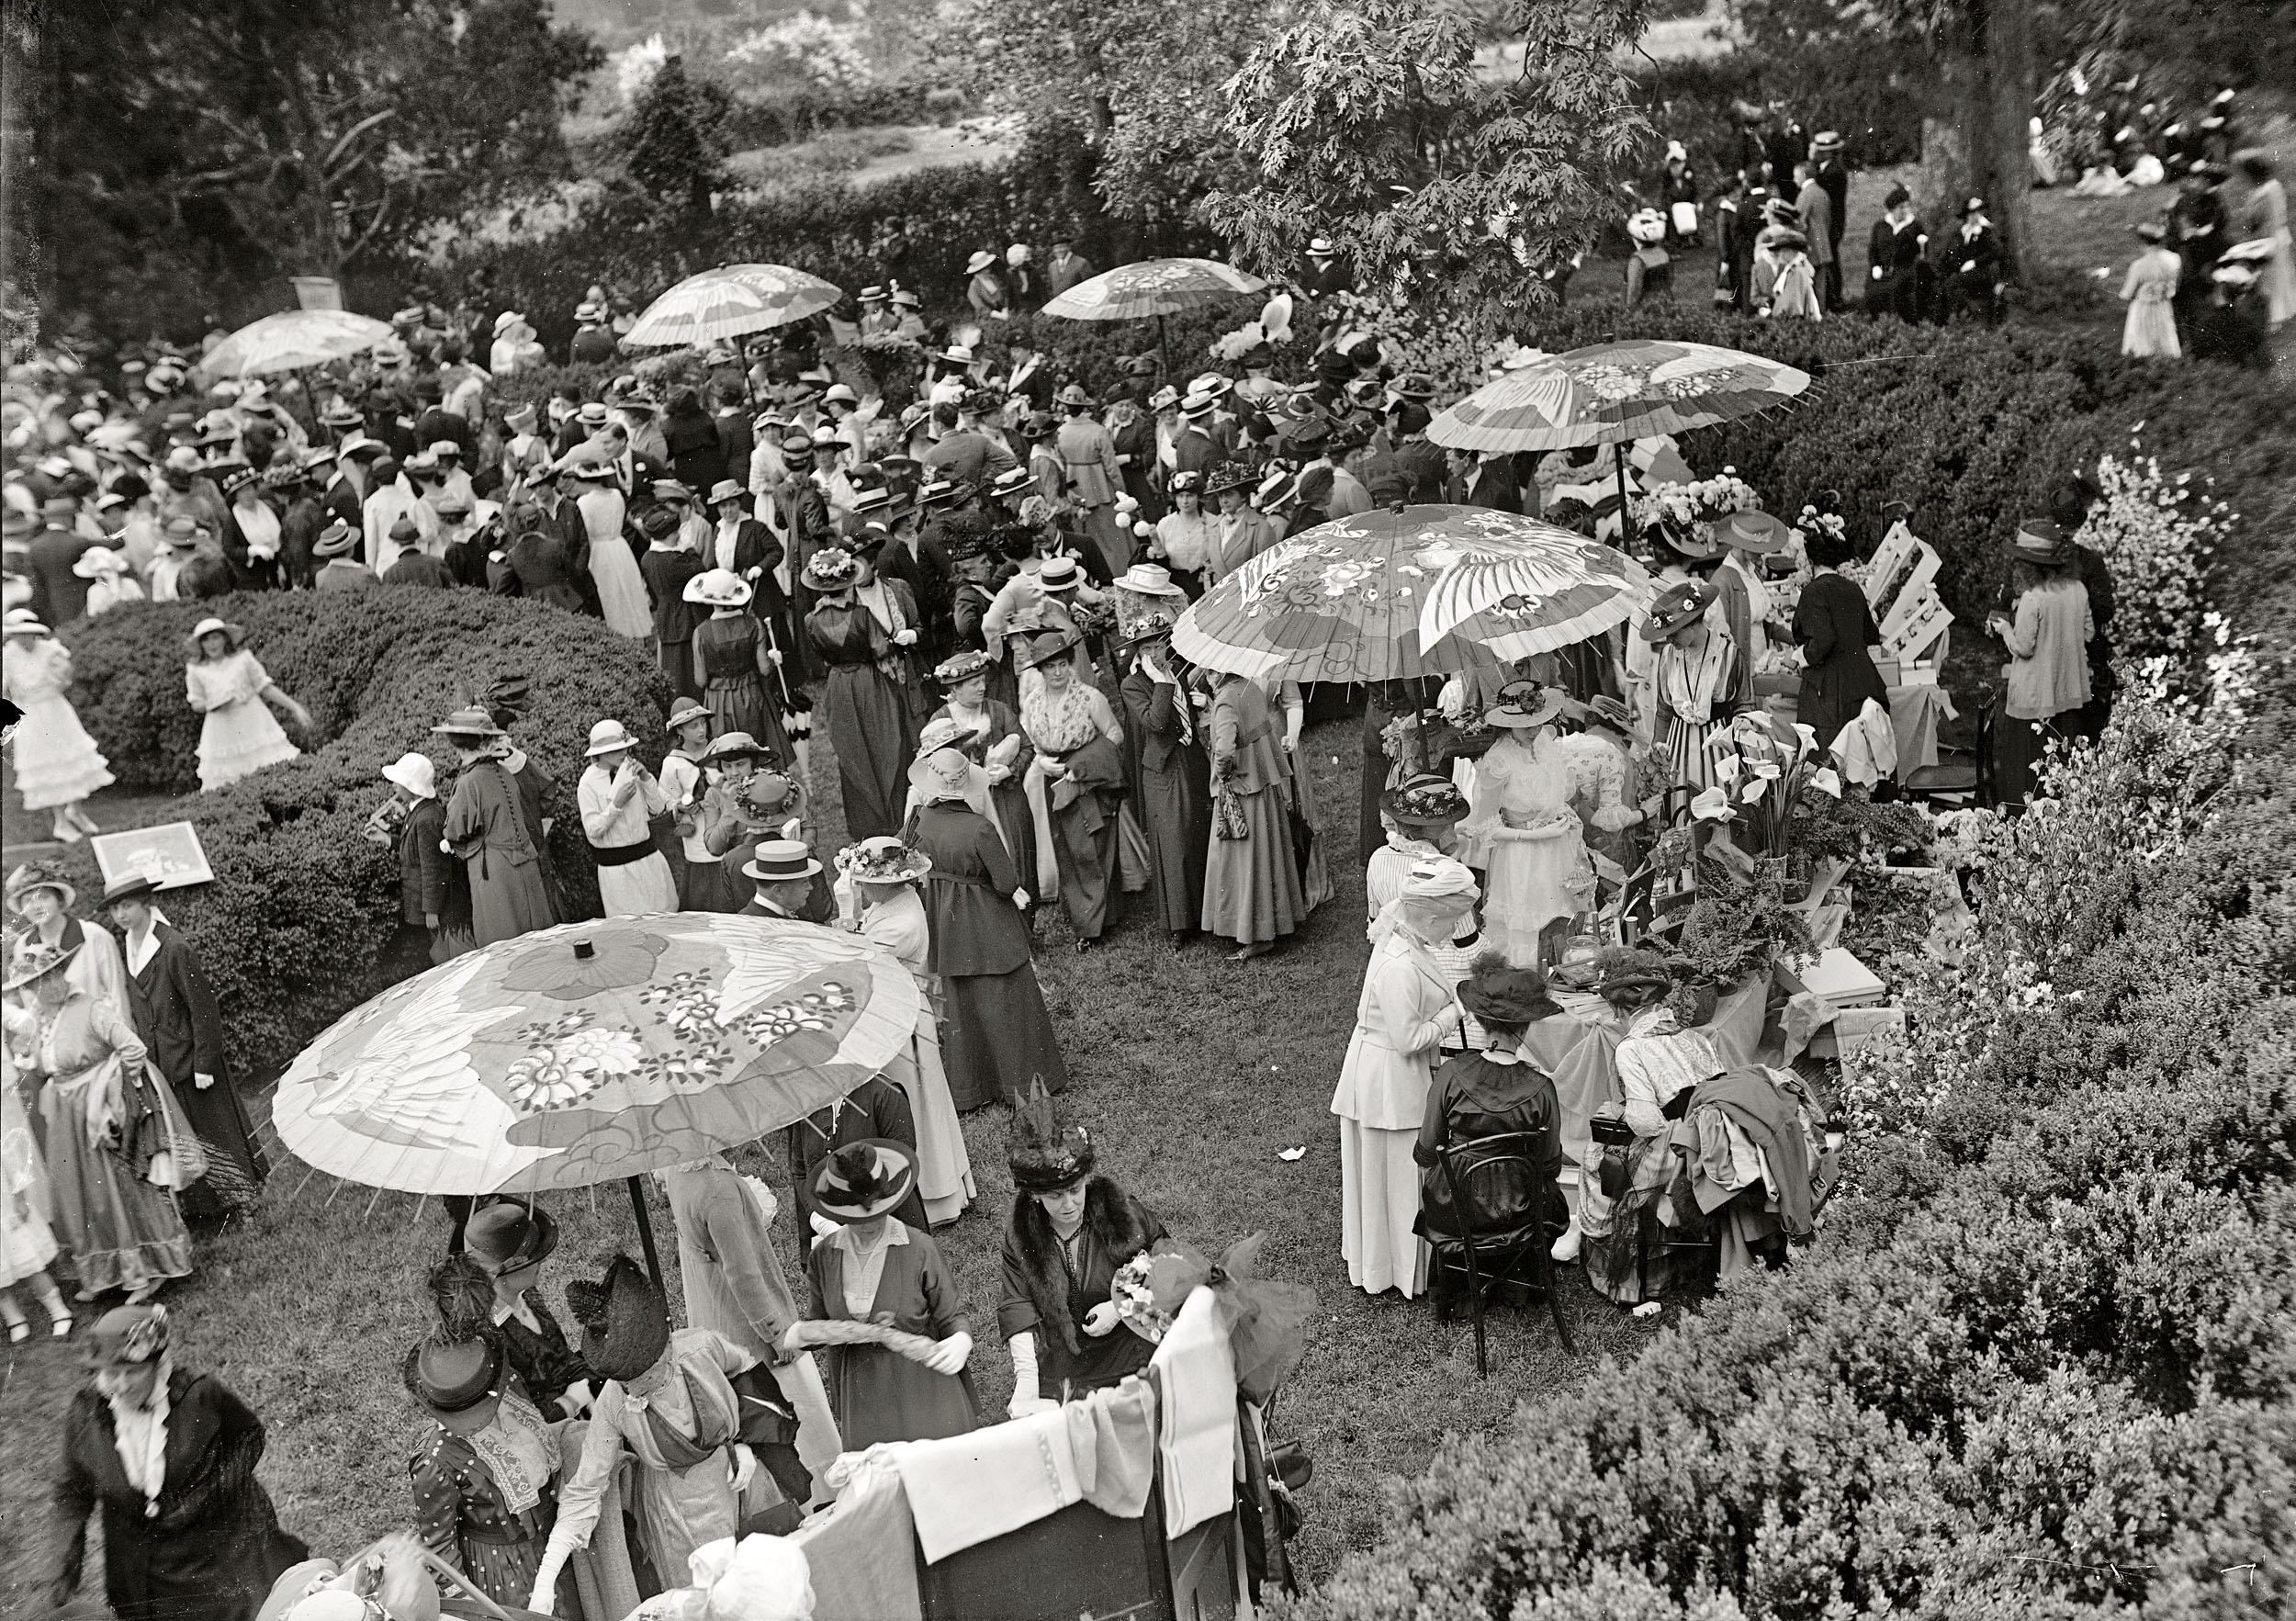 1915 May Day Garden Party